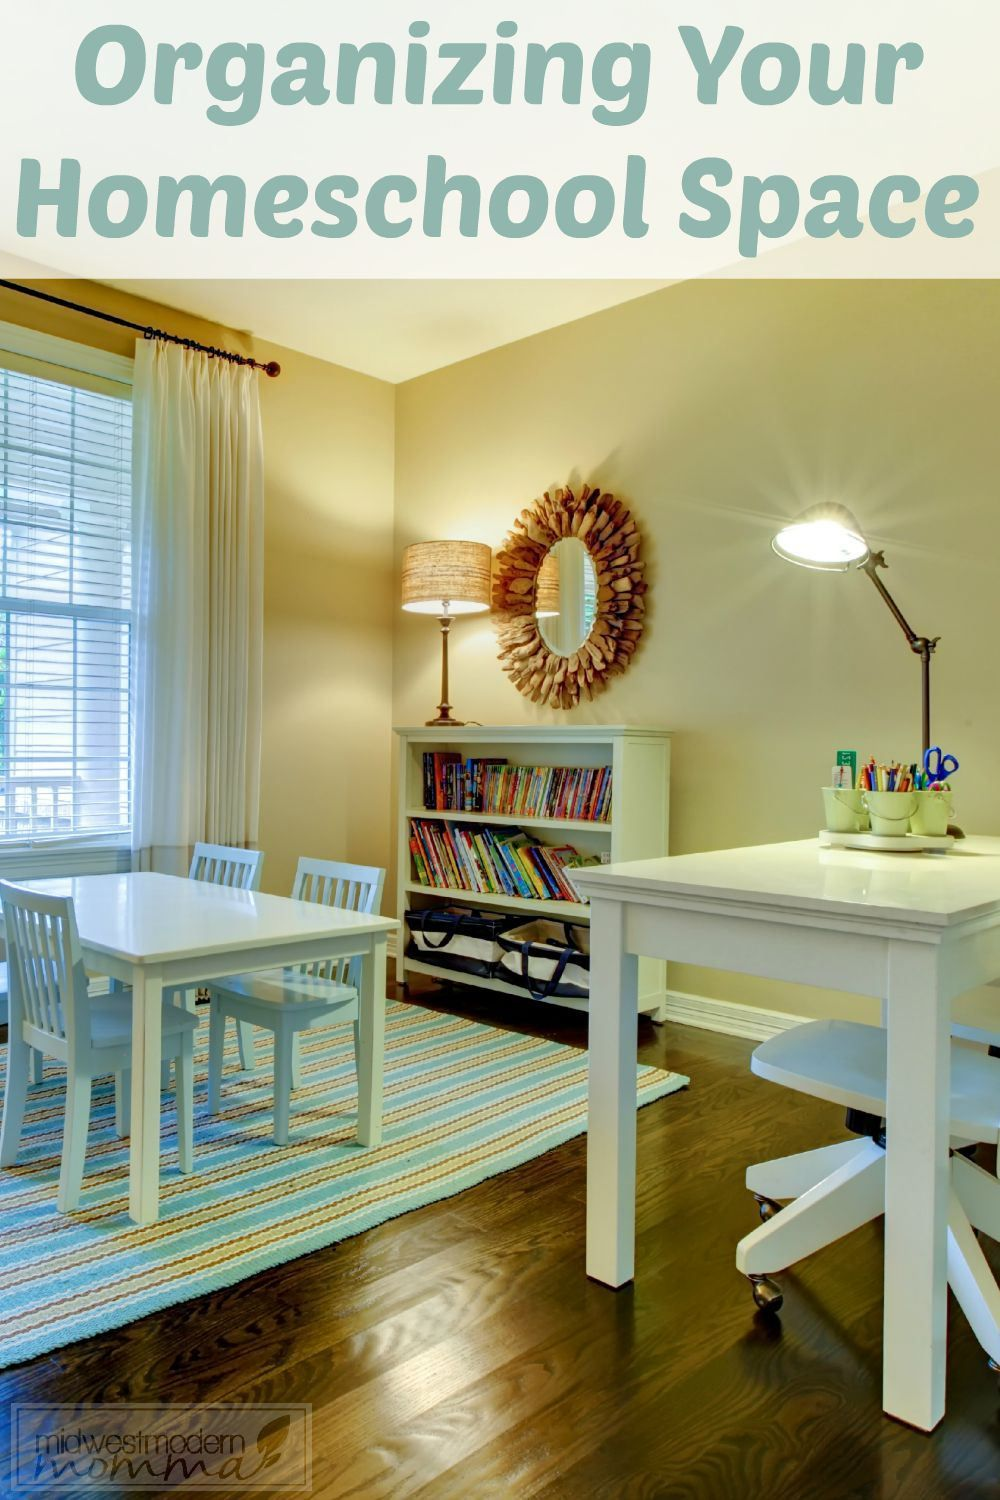 Photo of Organizing Your Homeschool Space | Organizing Tips